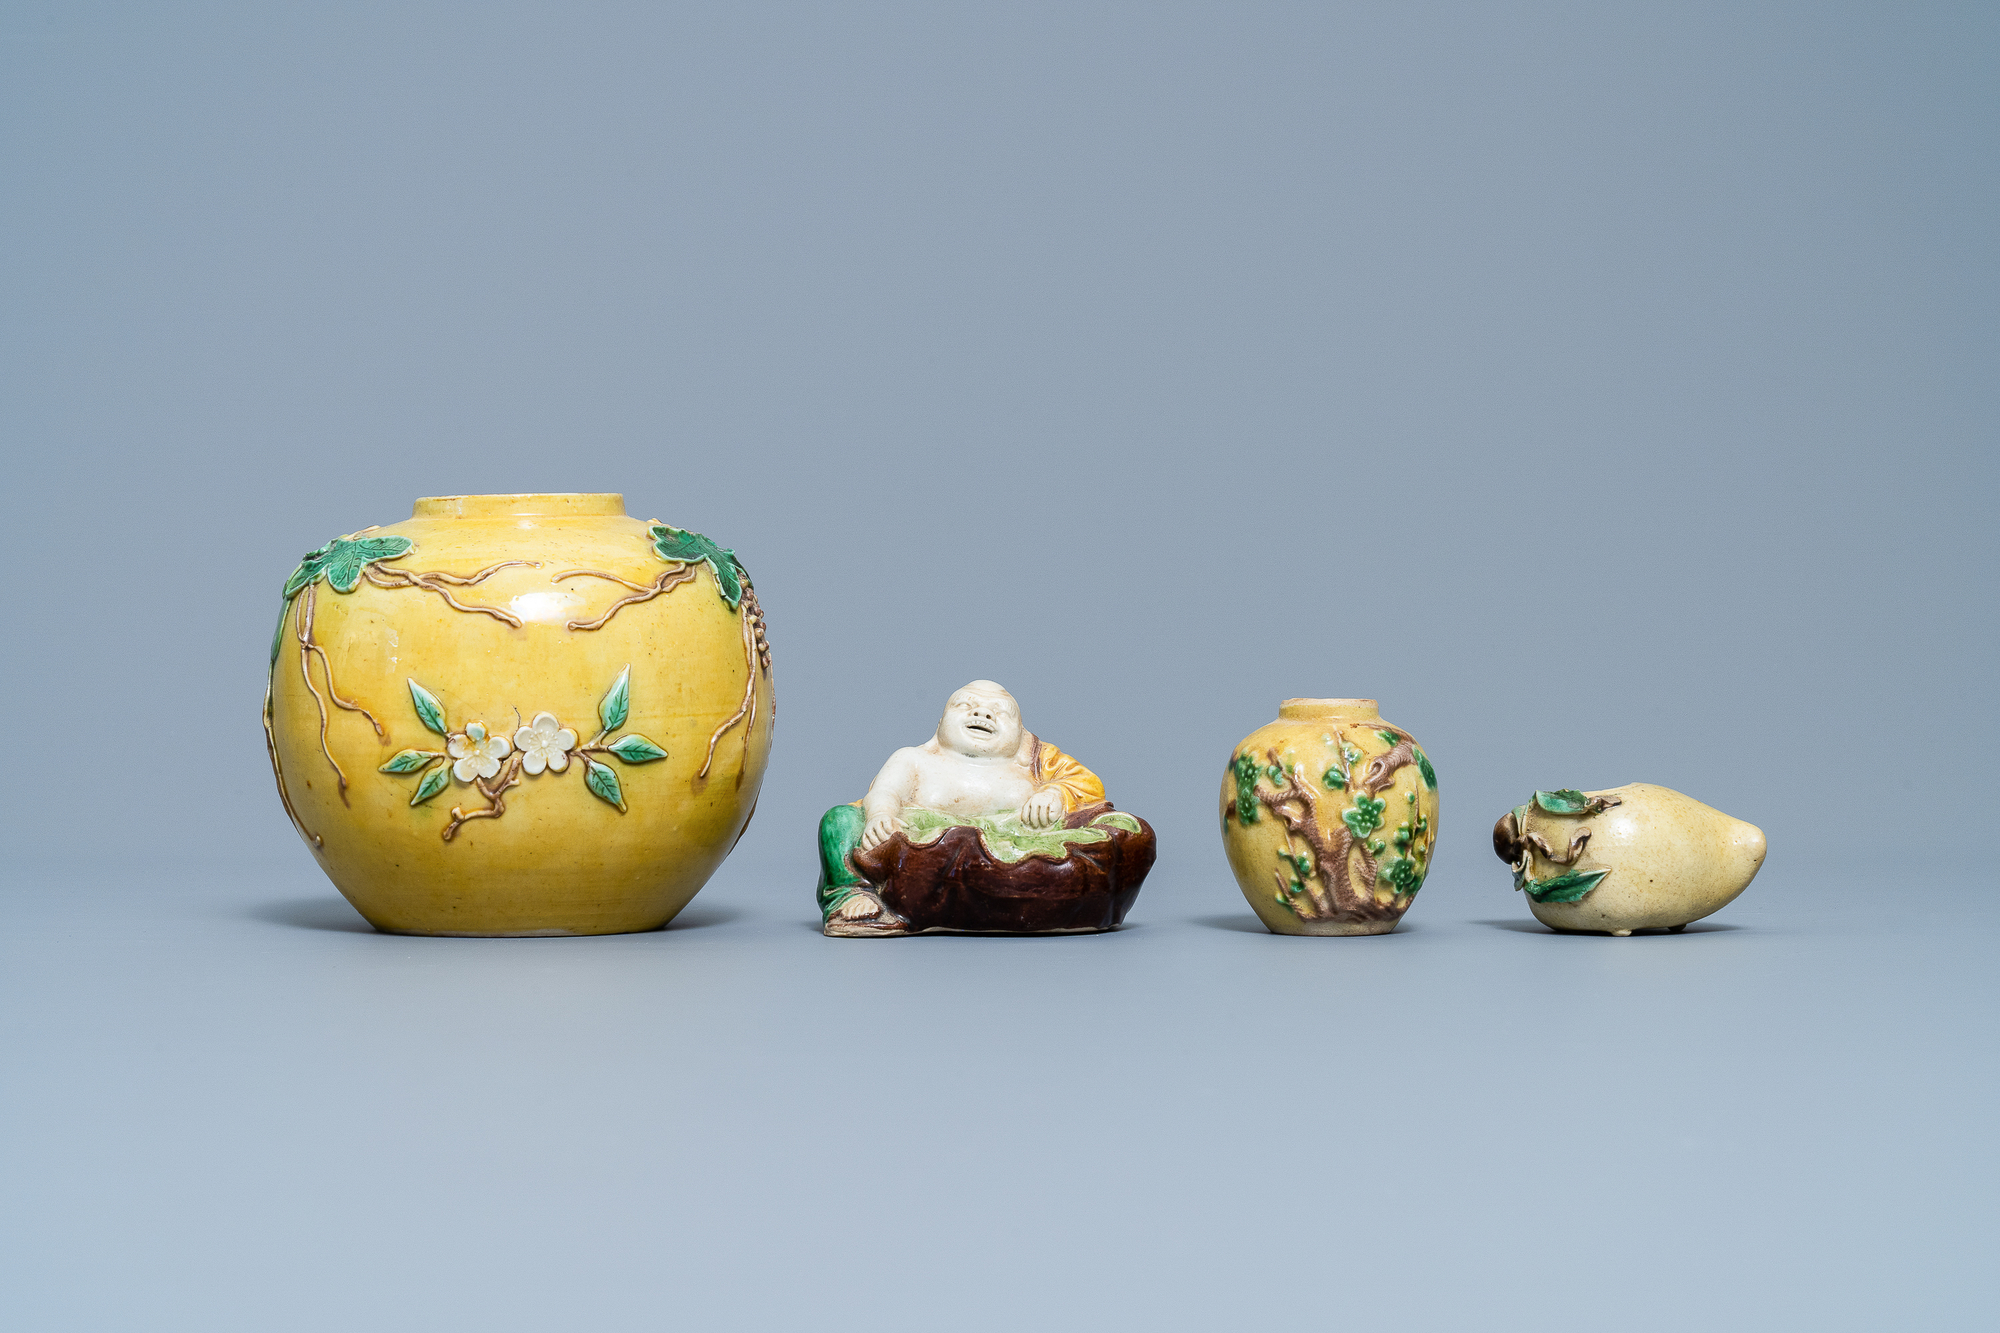 Two Chinese biscuit jars, a Buddha figure and a brushwasher, 19/20th C. - Image 2 of 7